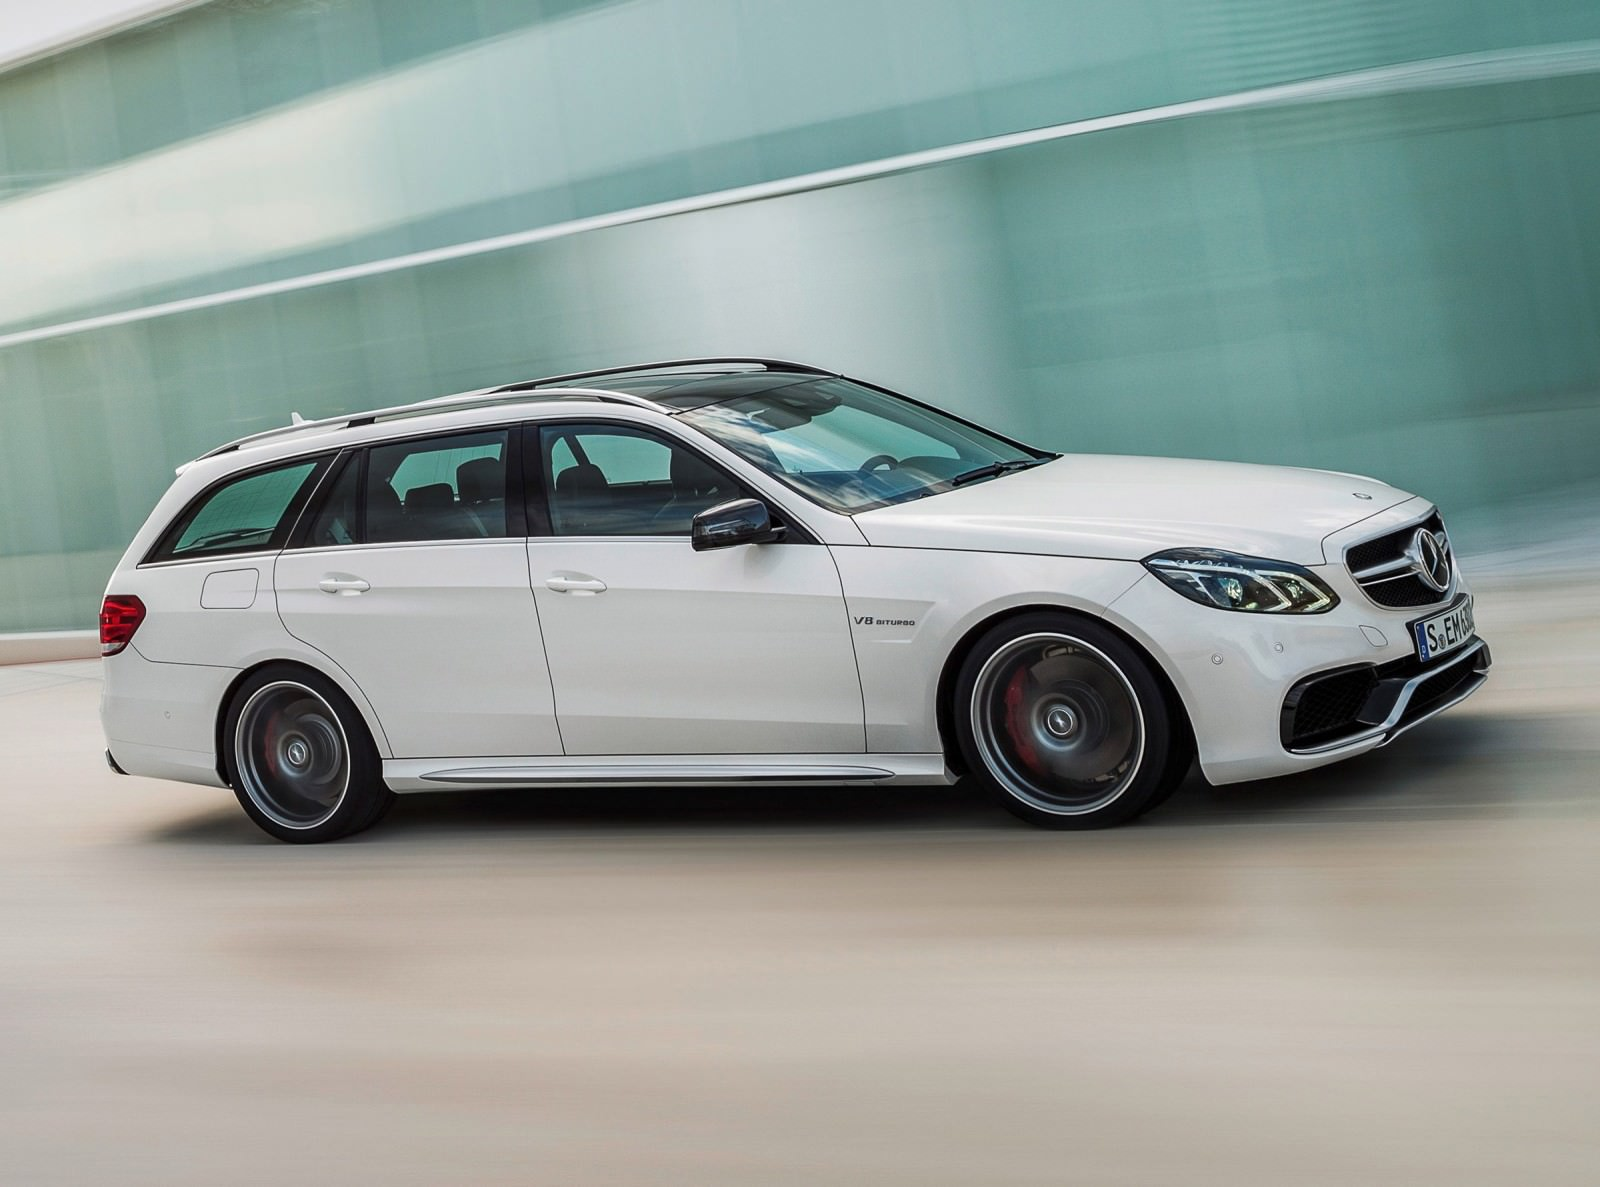 2014 e63 amg s model 4matic wagon. Black Bedroom Furniture Sets. Home Design Ideas